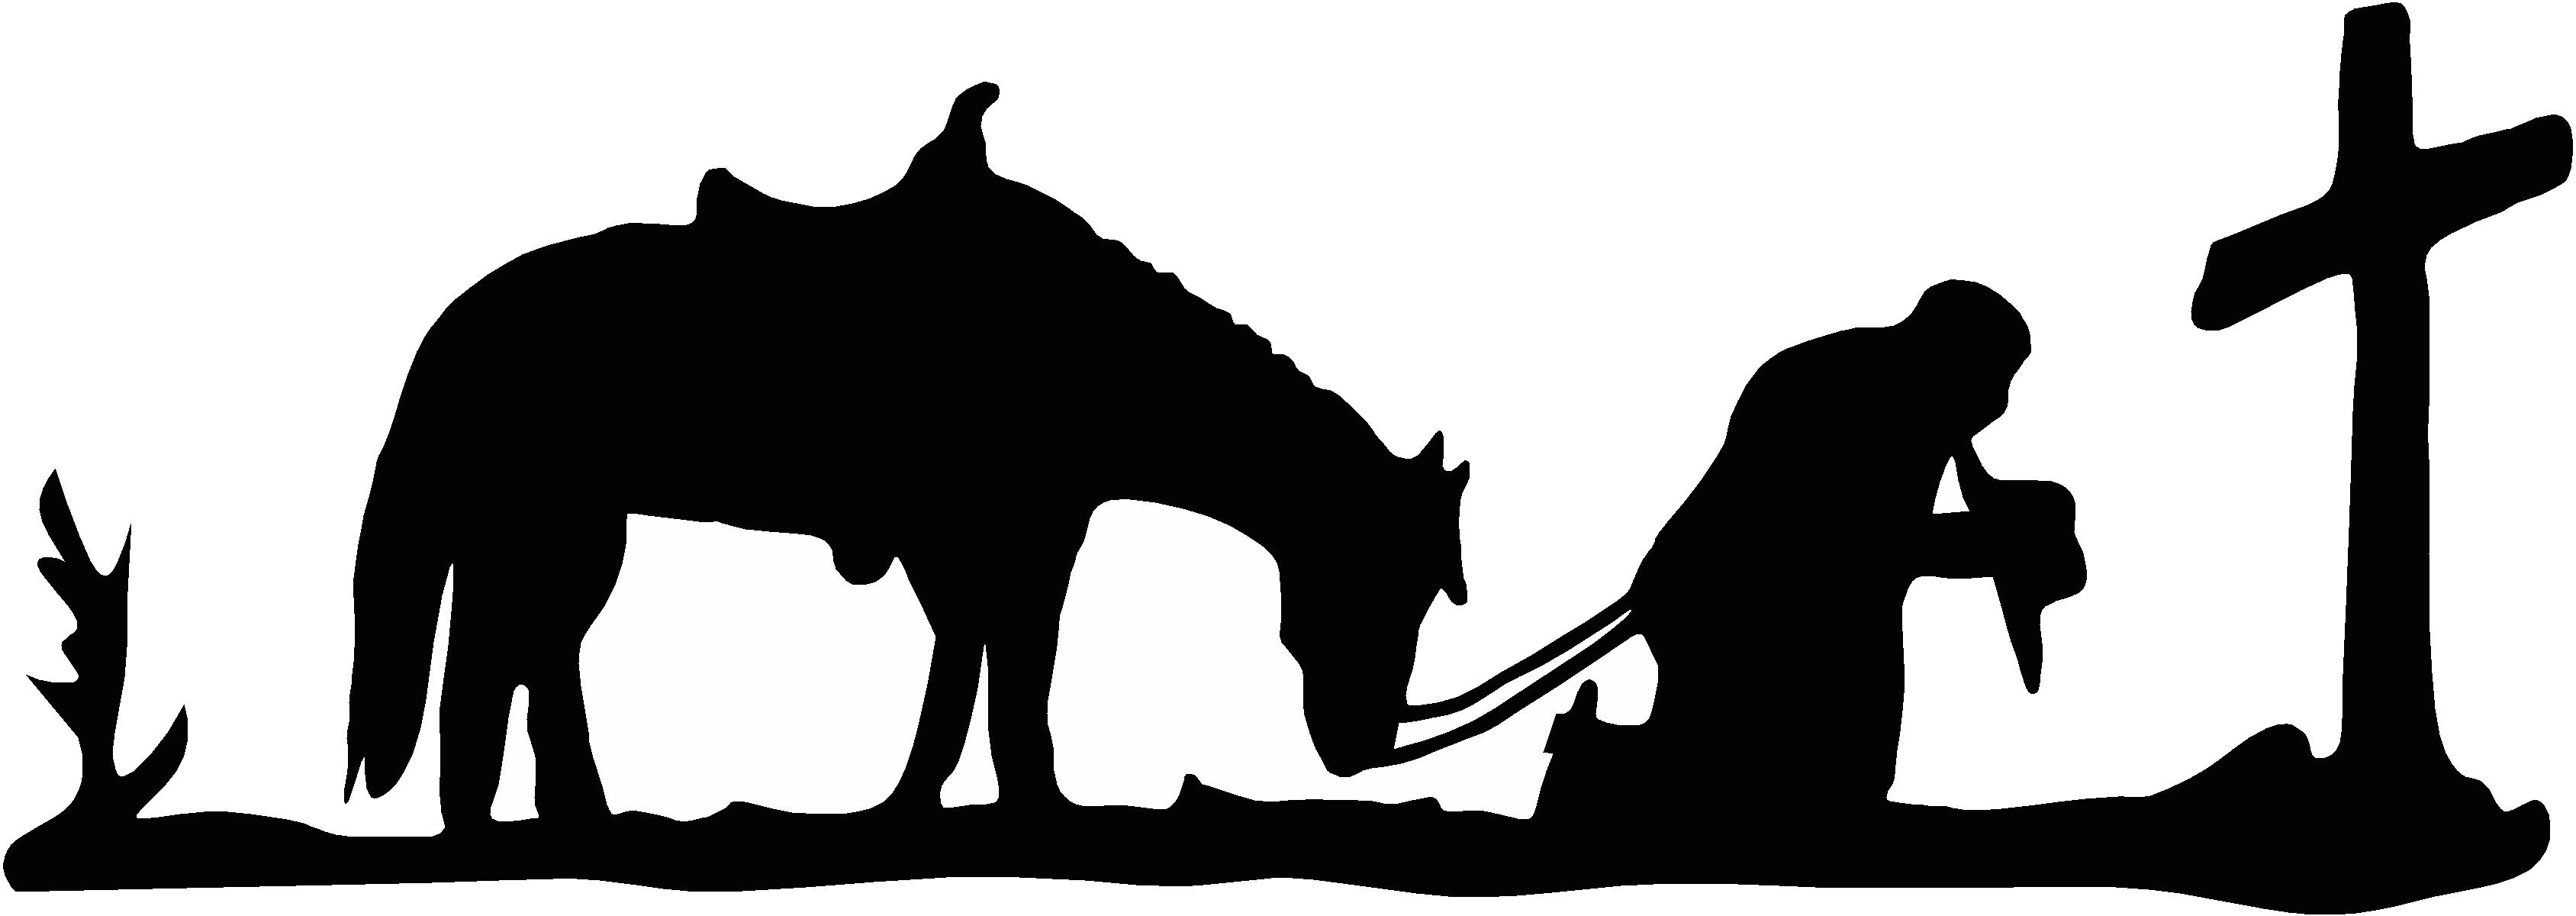 Free Christian Cowboy Cliparts, Download Free Clip Art, Free.